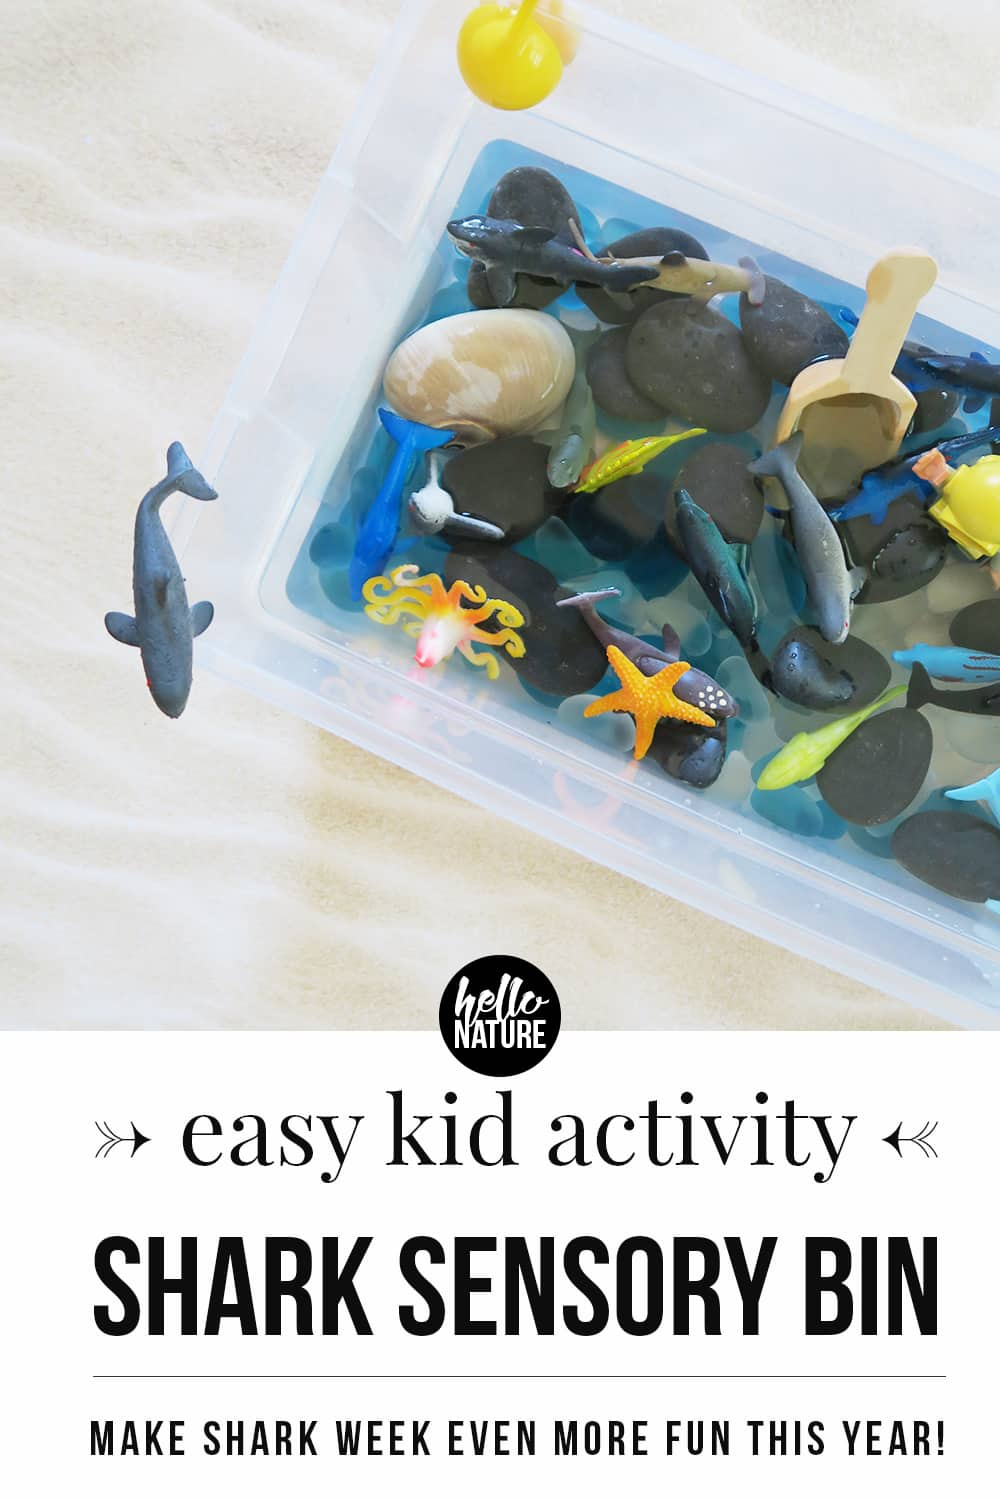 Need a fun indoor activity for your kids? Make this shark sensory bin! It's the perfect shark week activity for kids and it's a fintastic way to explore the ocean indoors! This is a toddler activity that can't be missed! #SensoryBin #ToddlerActivities #SharkWeek #IndoorActivities #IndoorToddlerActivities #RainyDayActivities